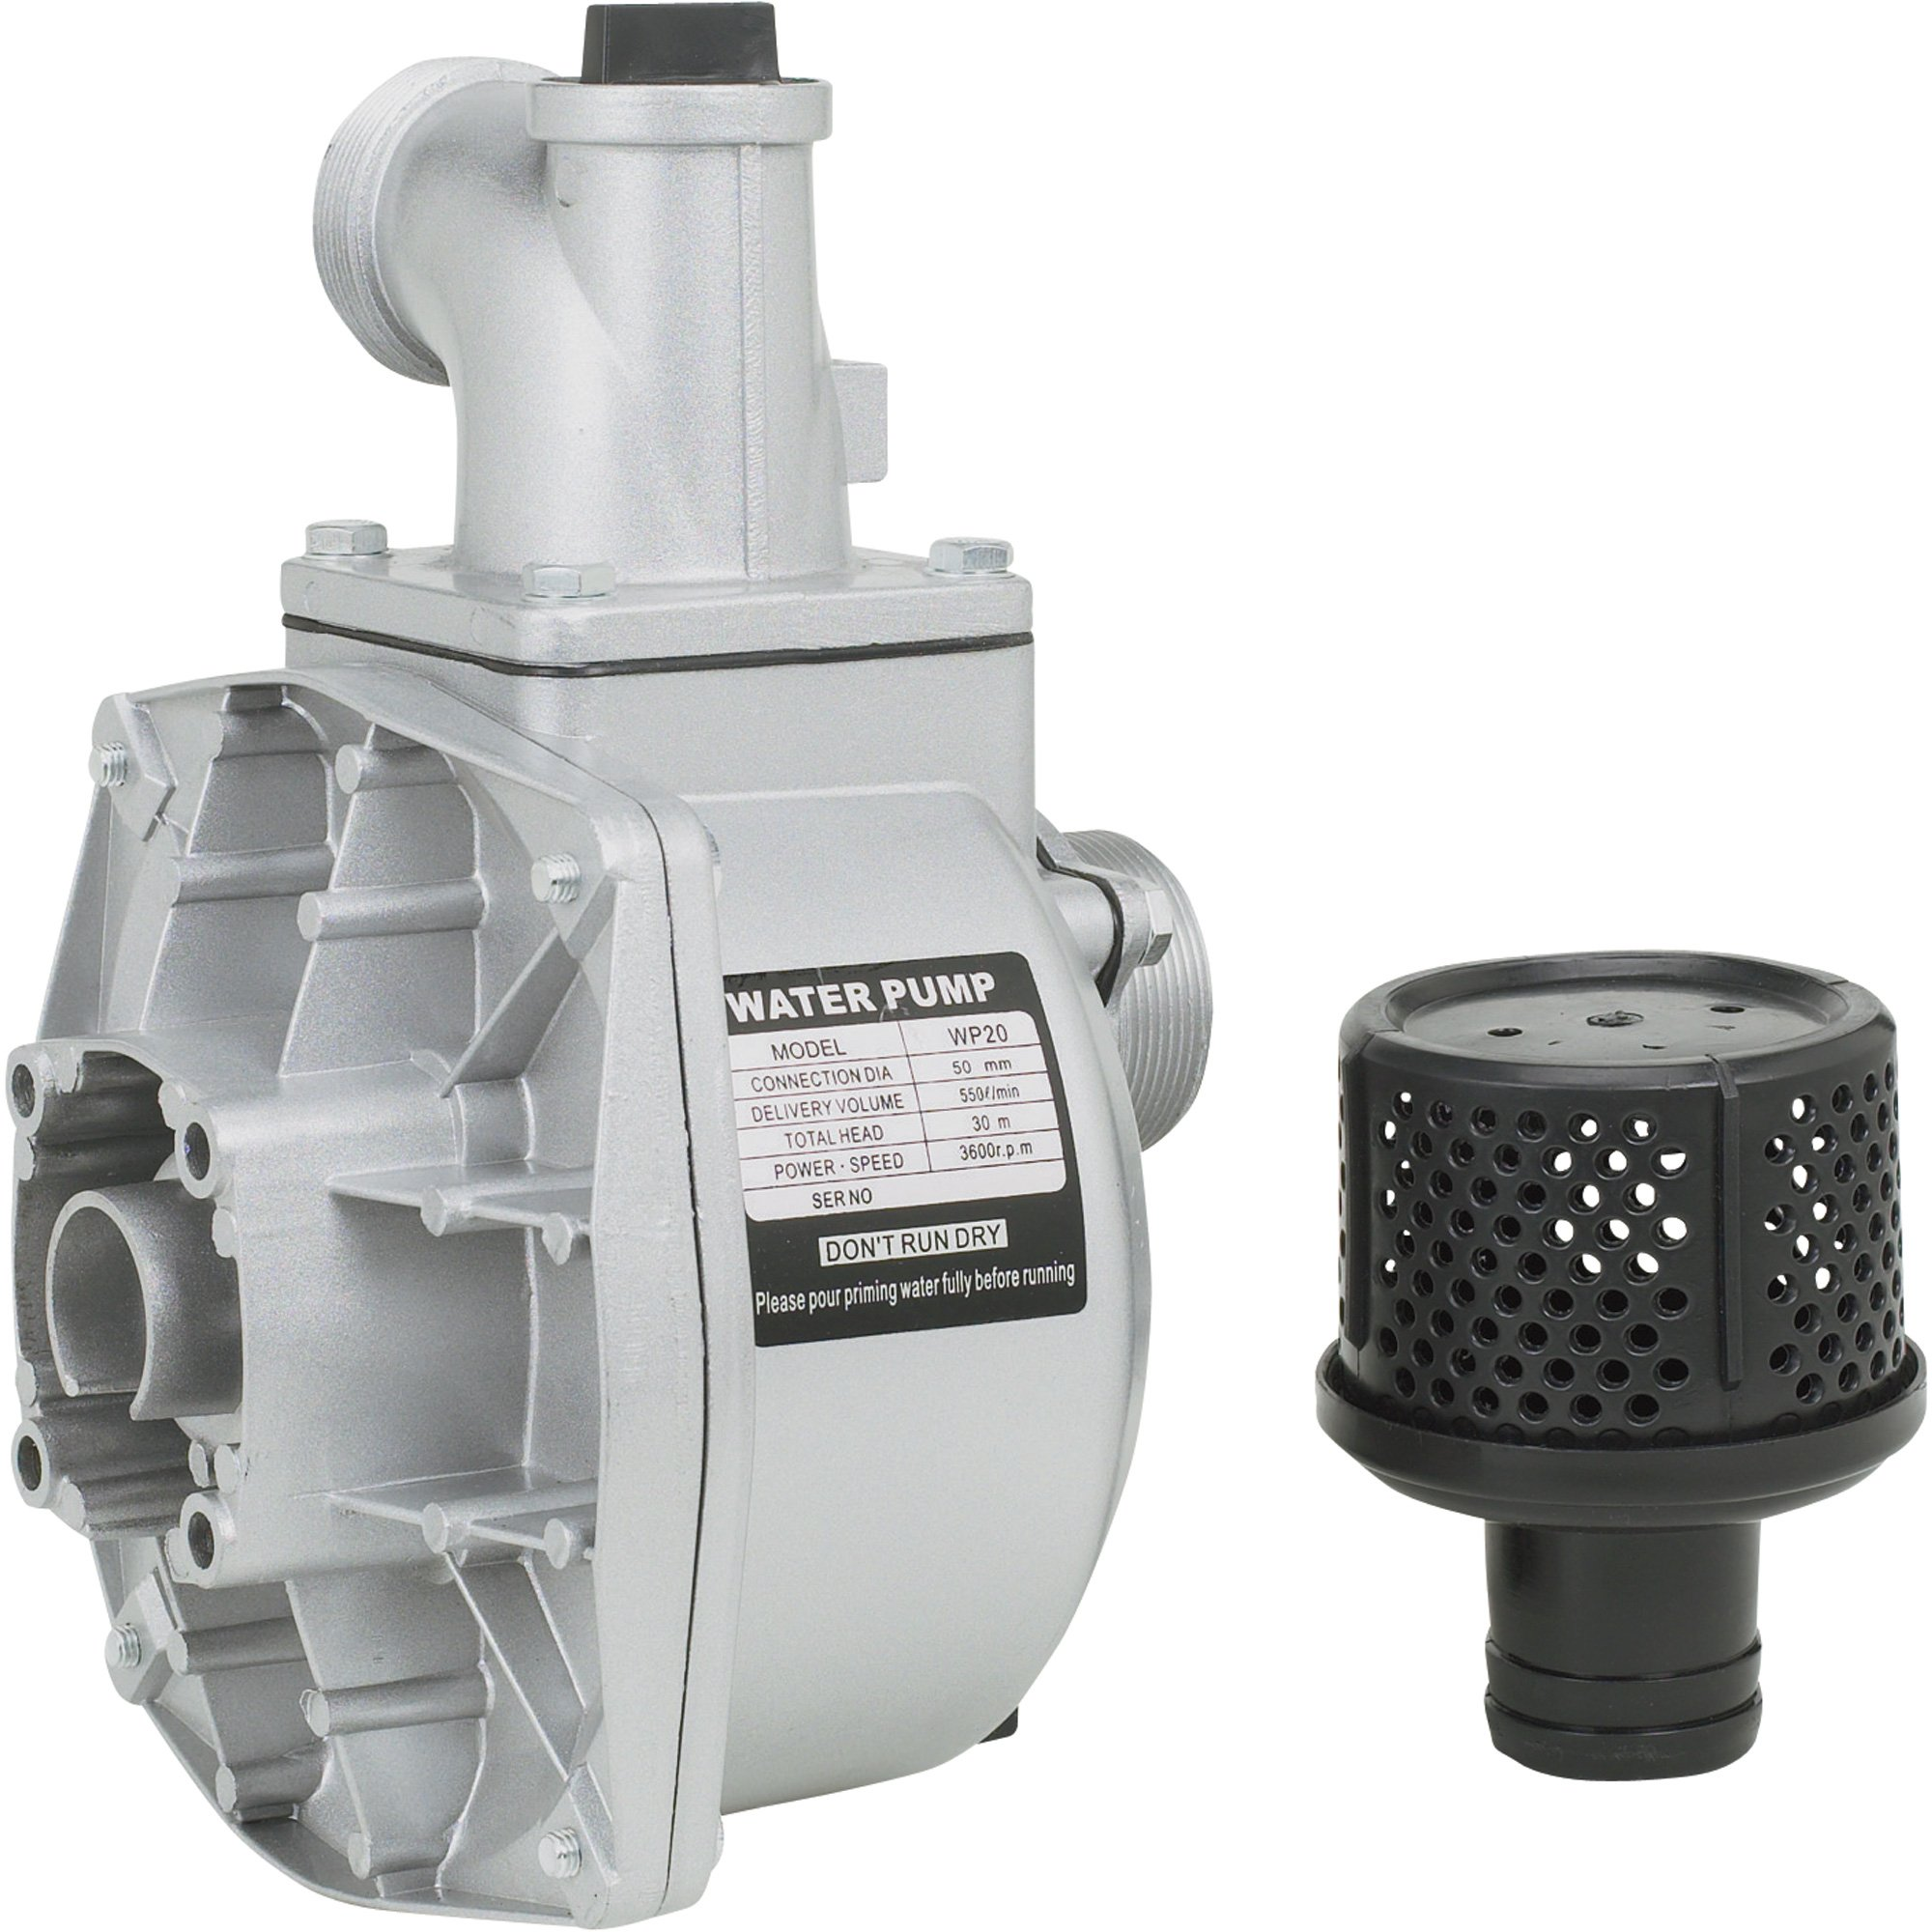 Semi-Trash Water Pump ONLY - For Threaded Shafts, 2in. Ports, 7860 GPH